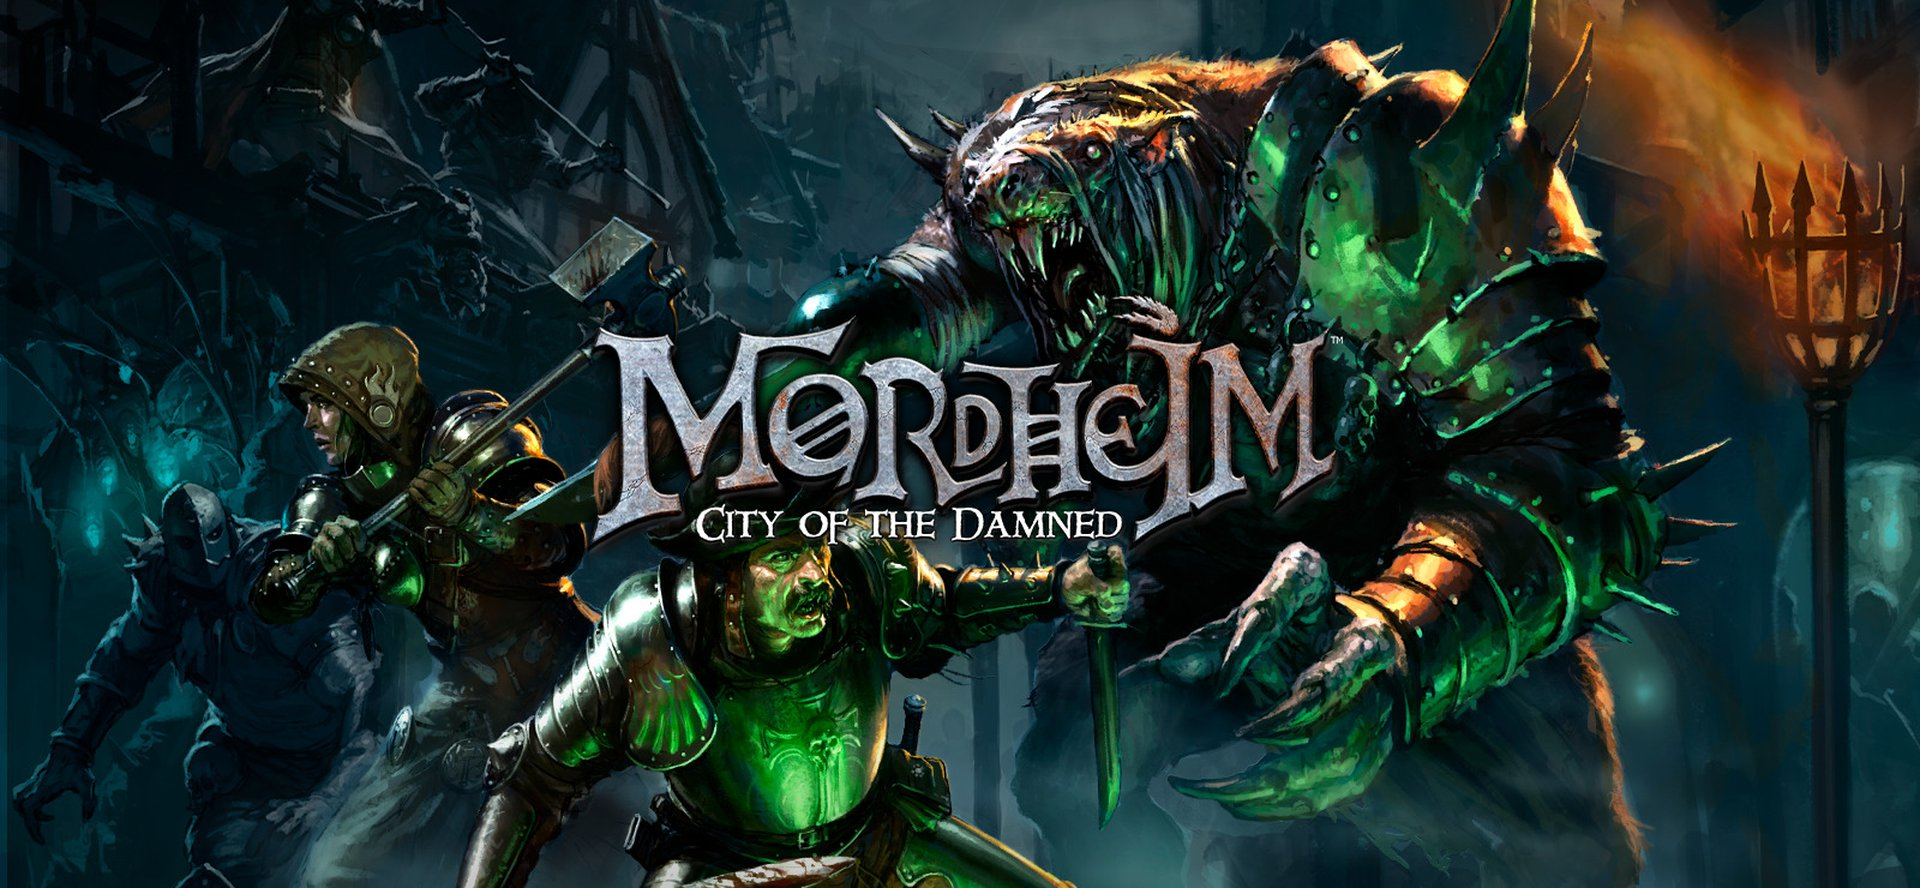 Mordheim - City of the Damned Video